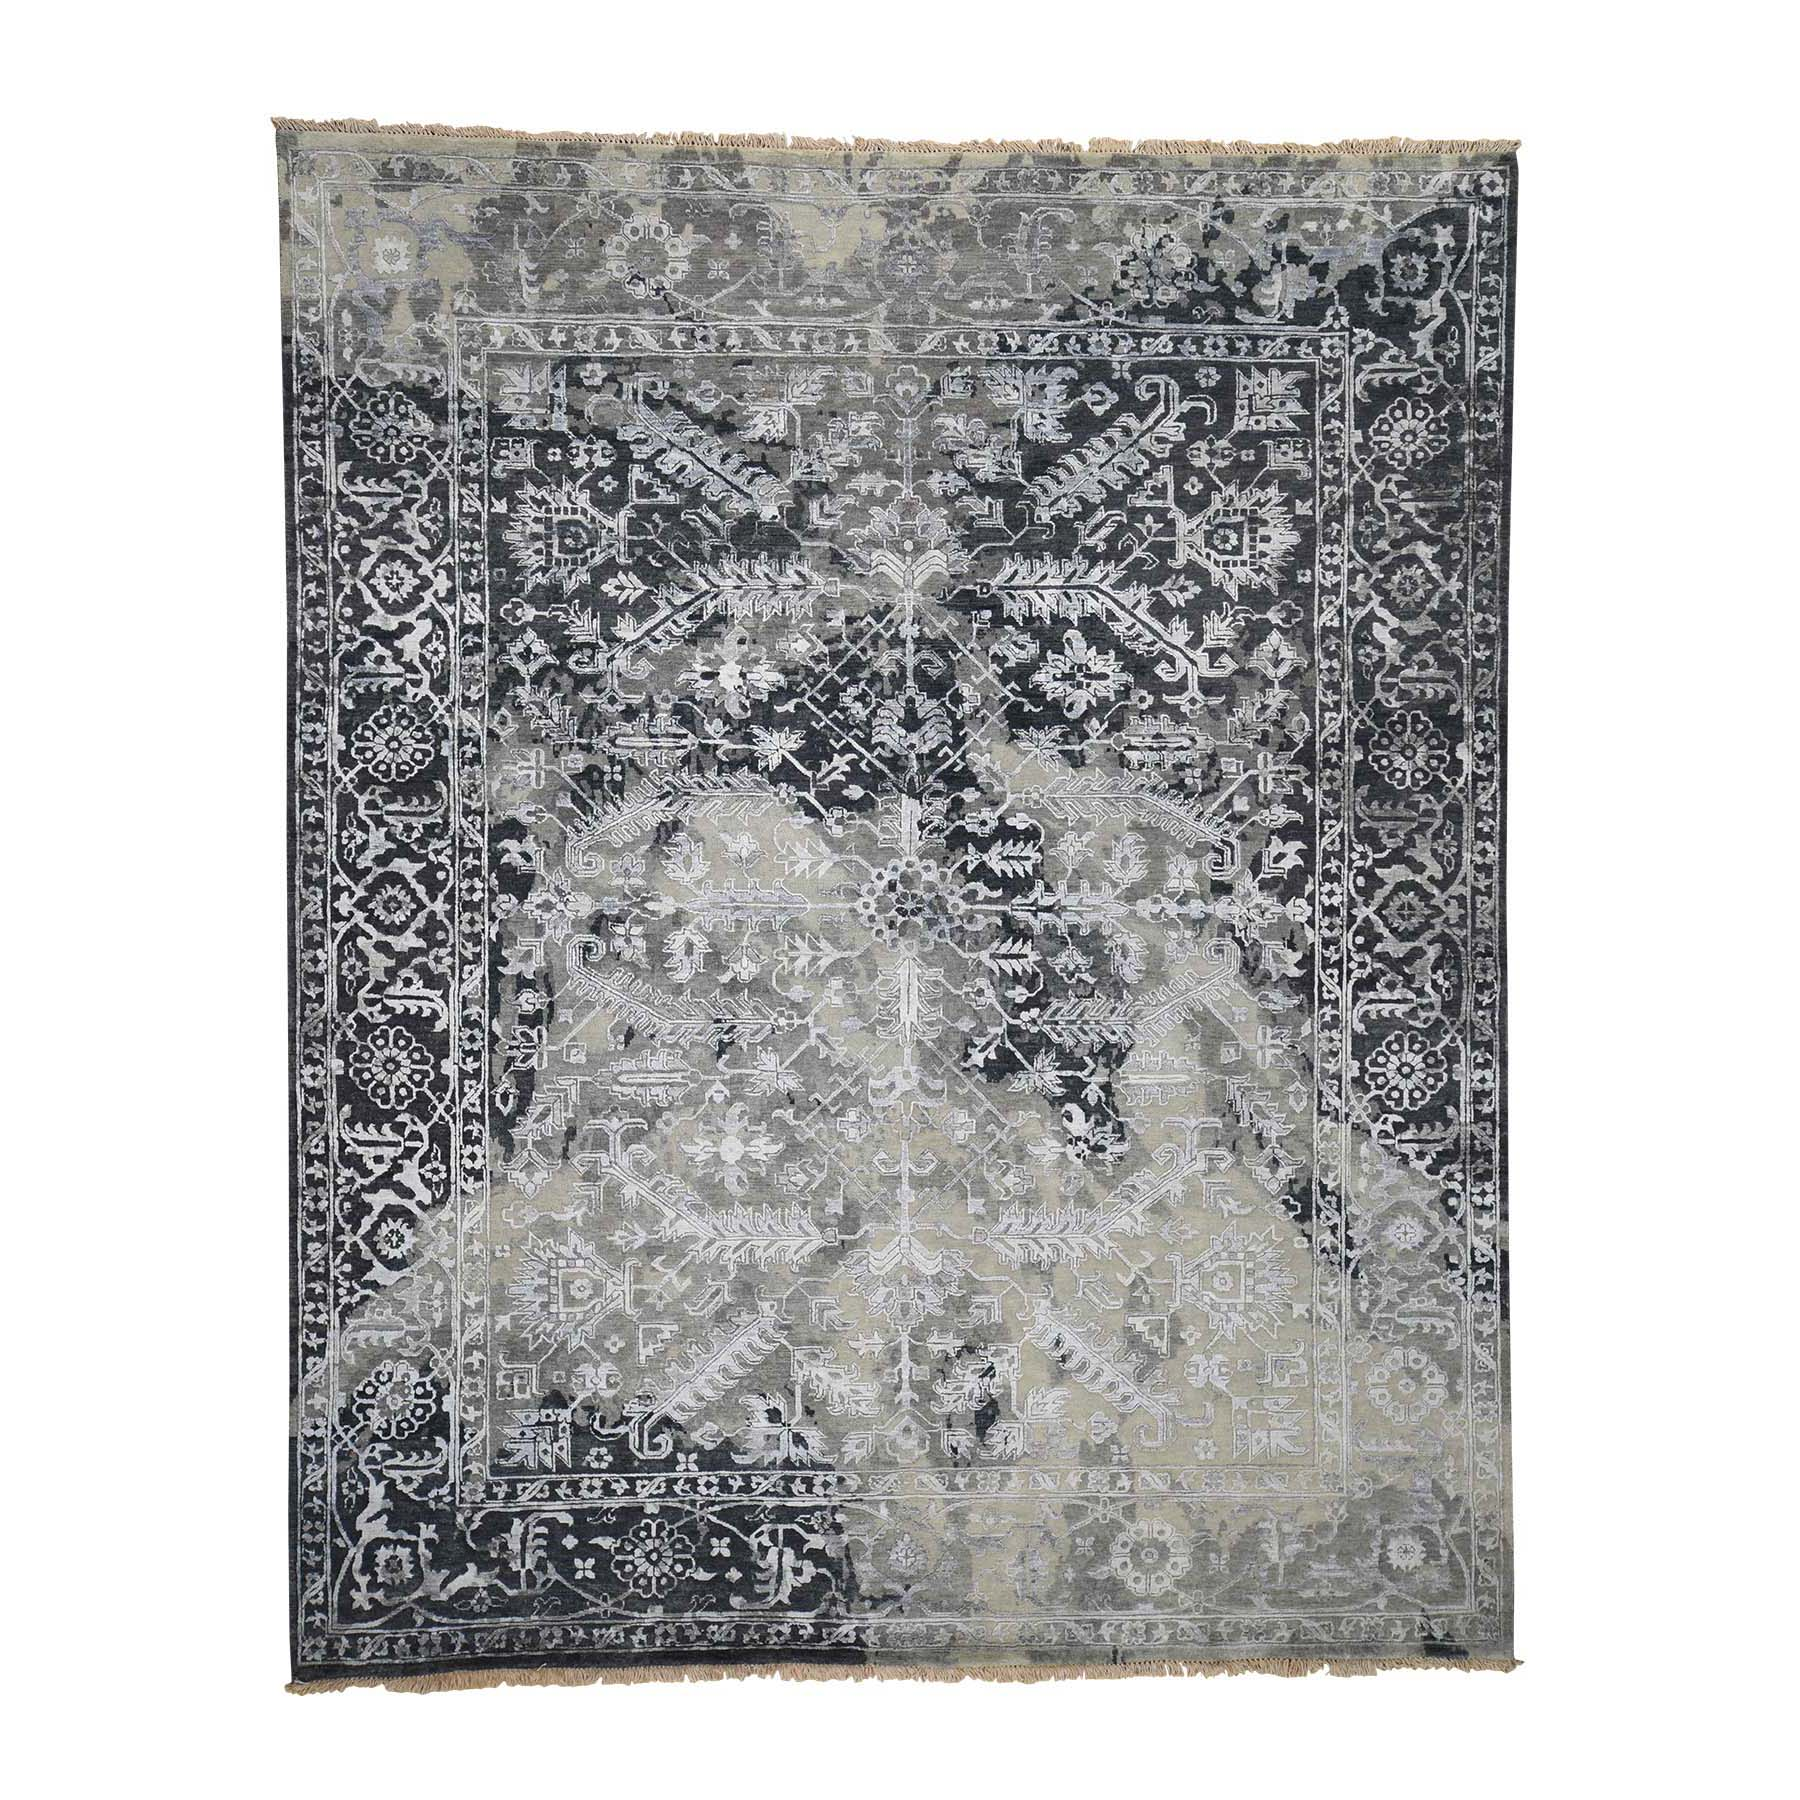 8'X10' All Over Design Broken Persian Heriz Wool And Silk Hand-Knotted Oriental Rug moada8ca